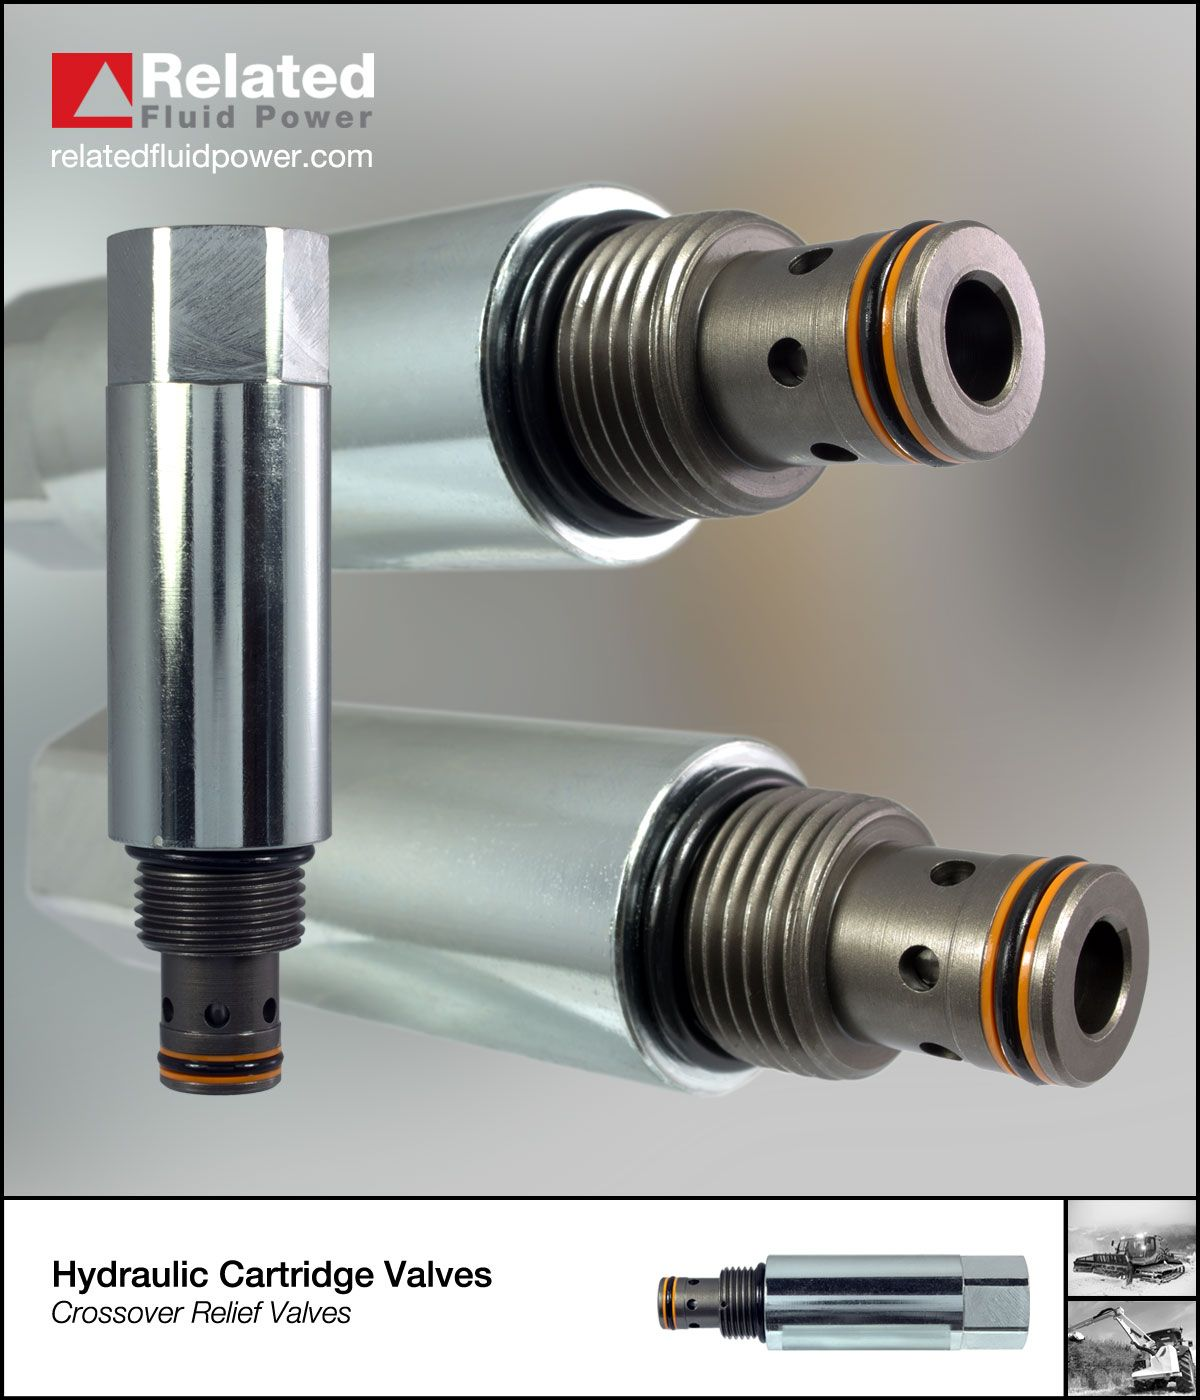 Crossover Relief Valves Related Fluid Power Relief Valve Valve Hydraulic Systems